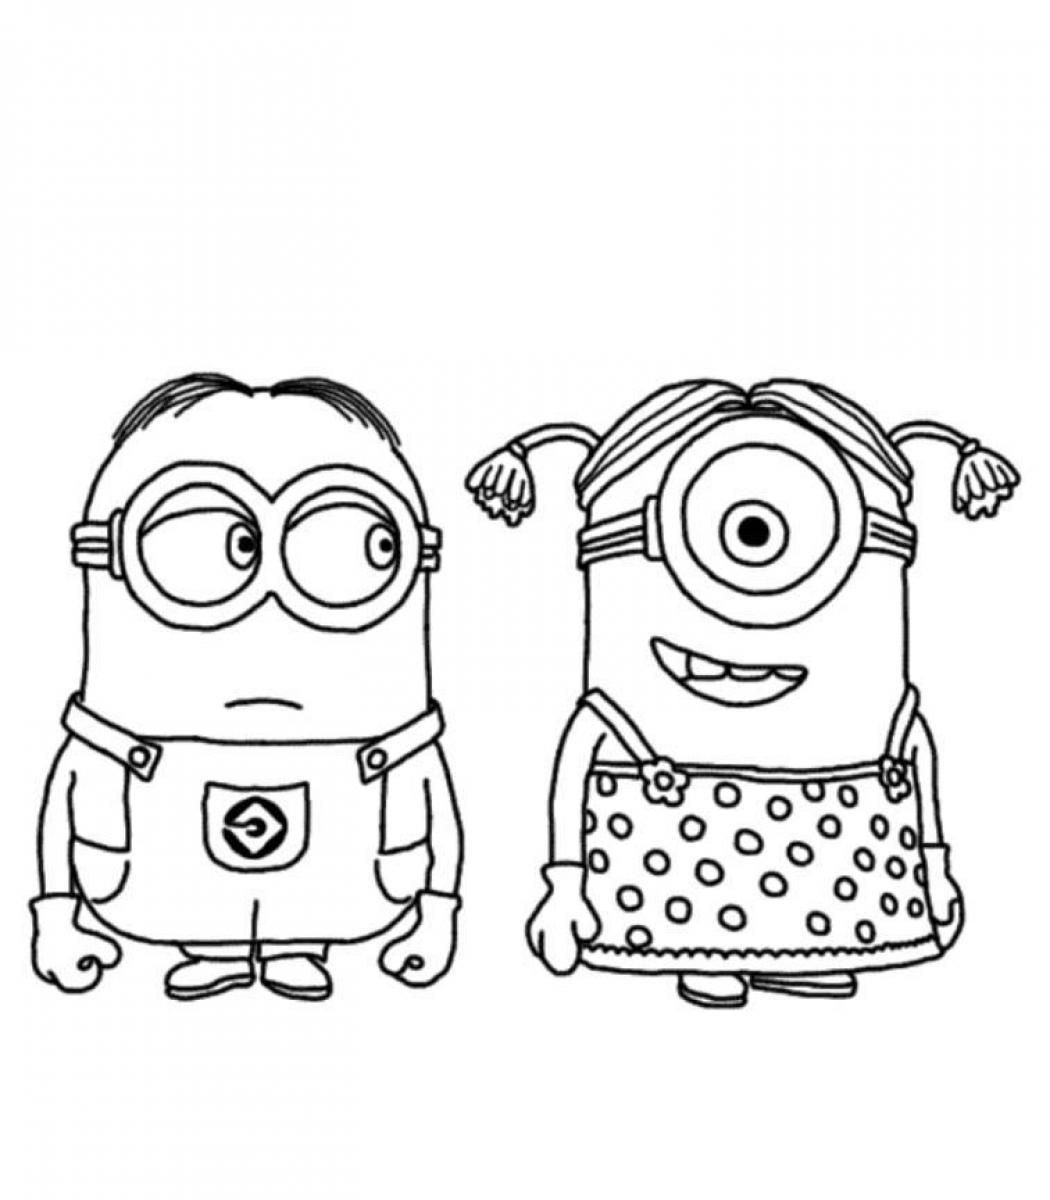 Minions Coloring Pages Minion Coloring Pages Printable Minion Coloring Pages Free Minion